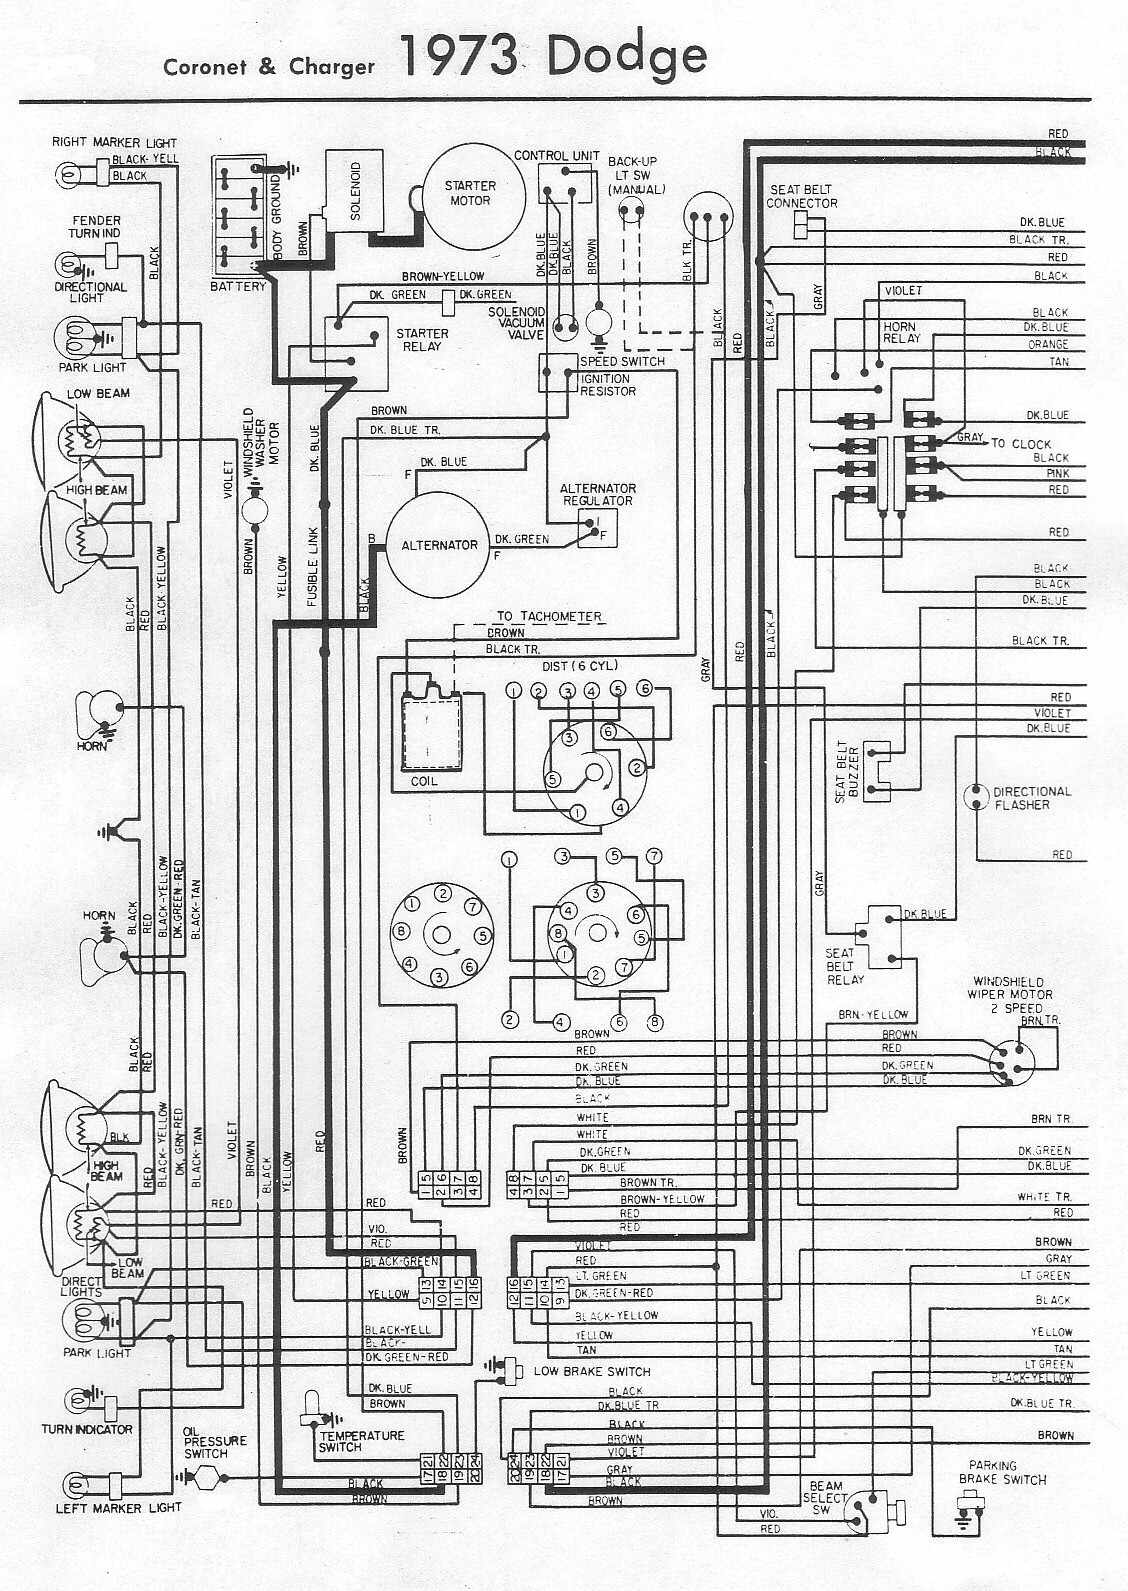 electrical wiring diagram of 1973 dodge coronet and charger?t\=1508404771 1973 dodge dart wiring diagram 1973 dodge dart instrument panel Dodge Dakota Engine Diagram at bakdesigns.co